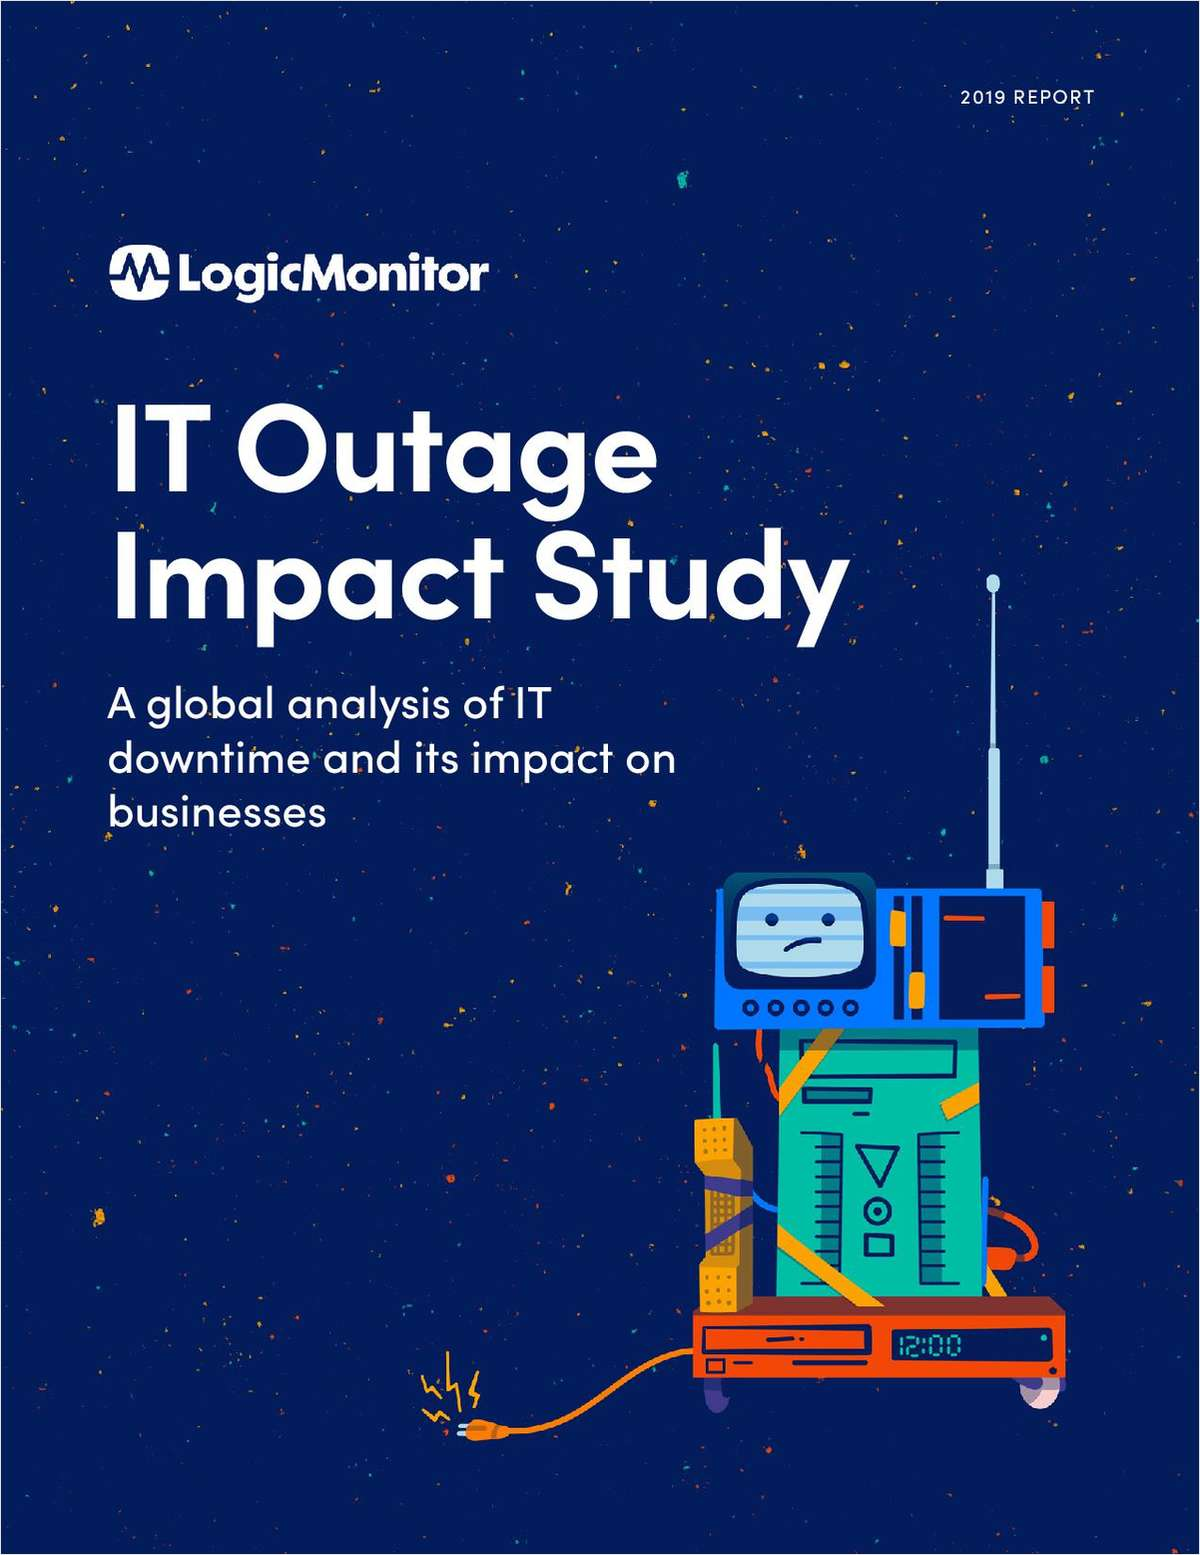 Outage Impact Study